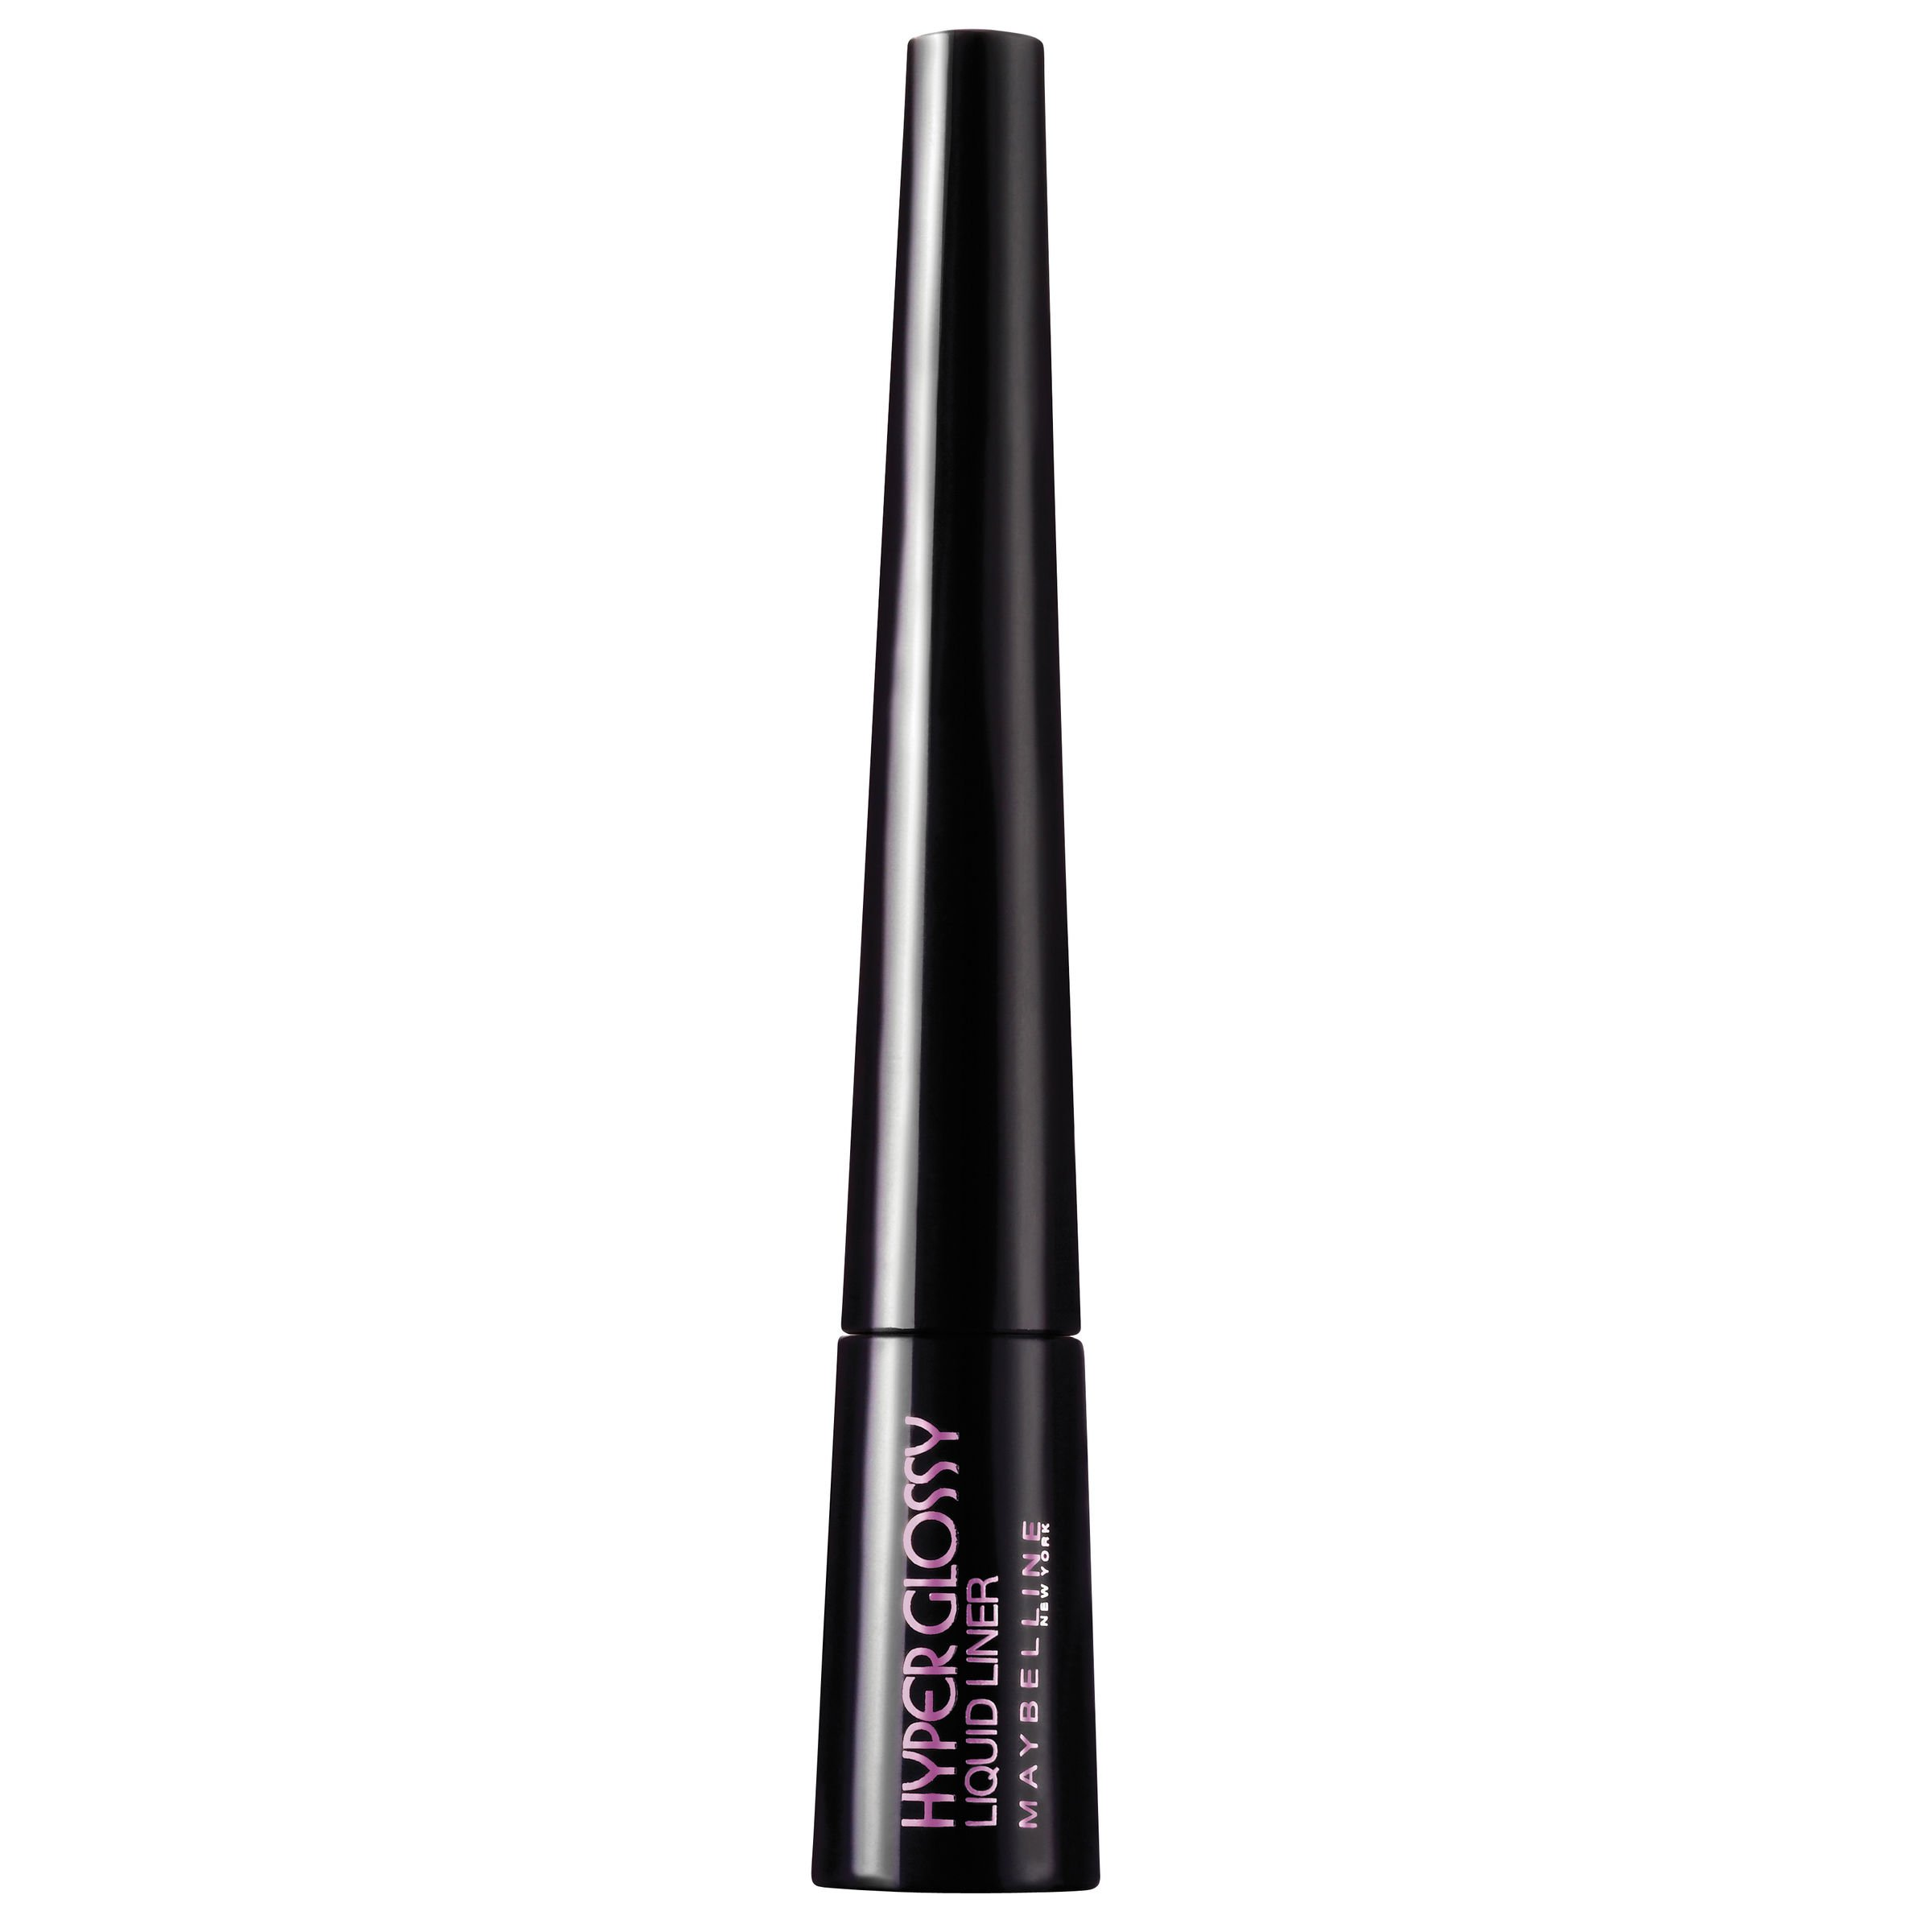 Maybelline Hyper Glossy Liquid Liner, Black, 3g product image